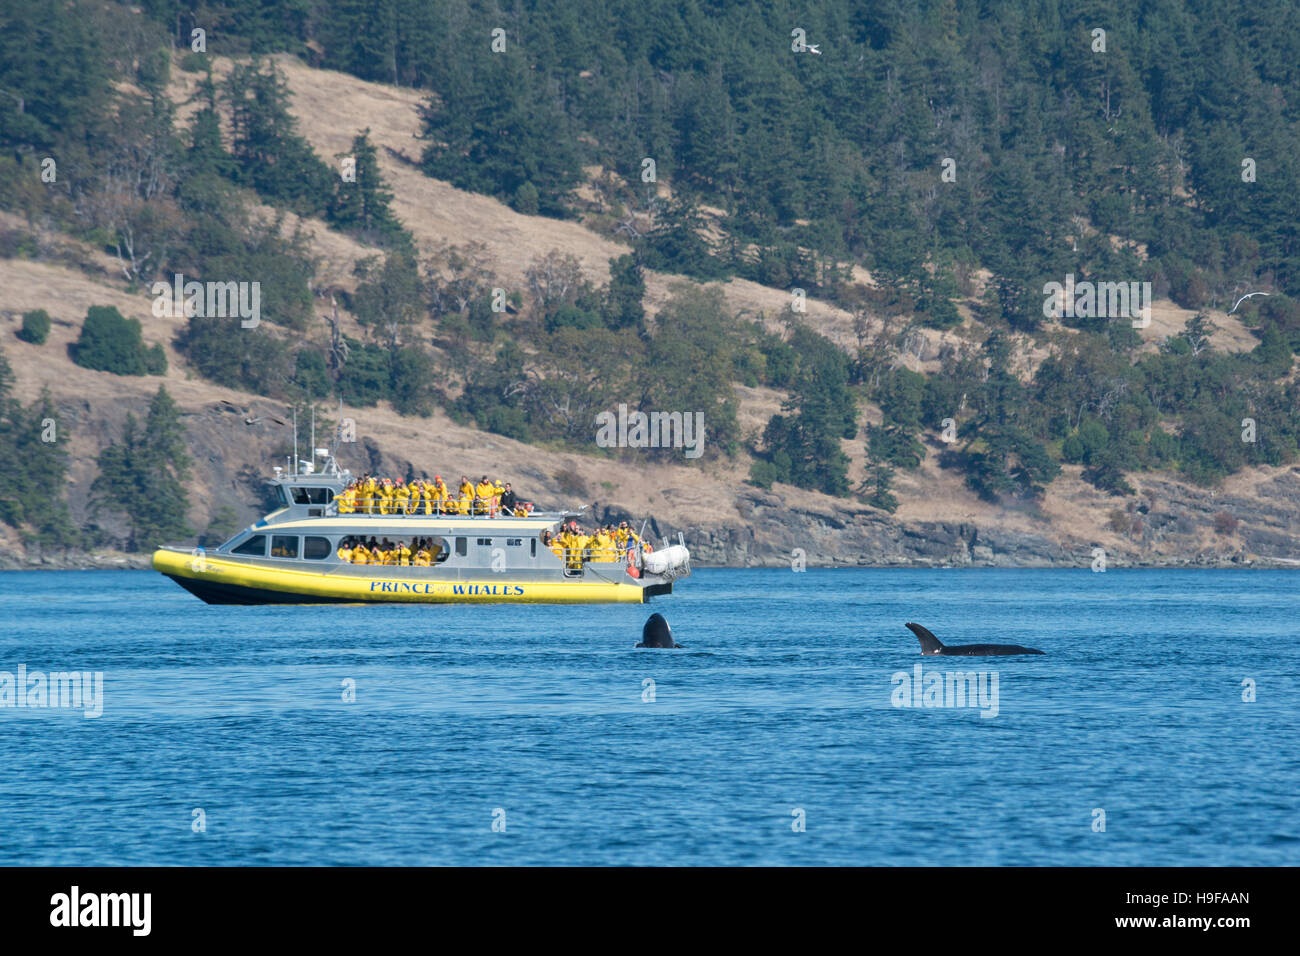 transient orcas or killer whales, Orcinus orca, surface next to a whale-watching boat, San Juan Islands, Washington, - Stock Image